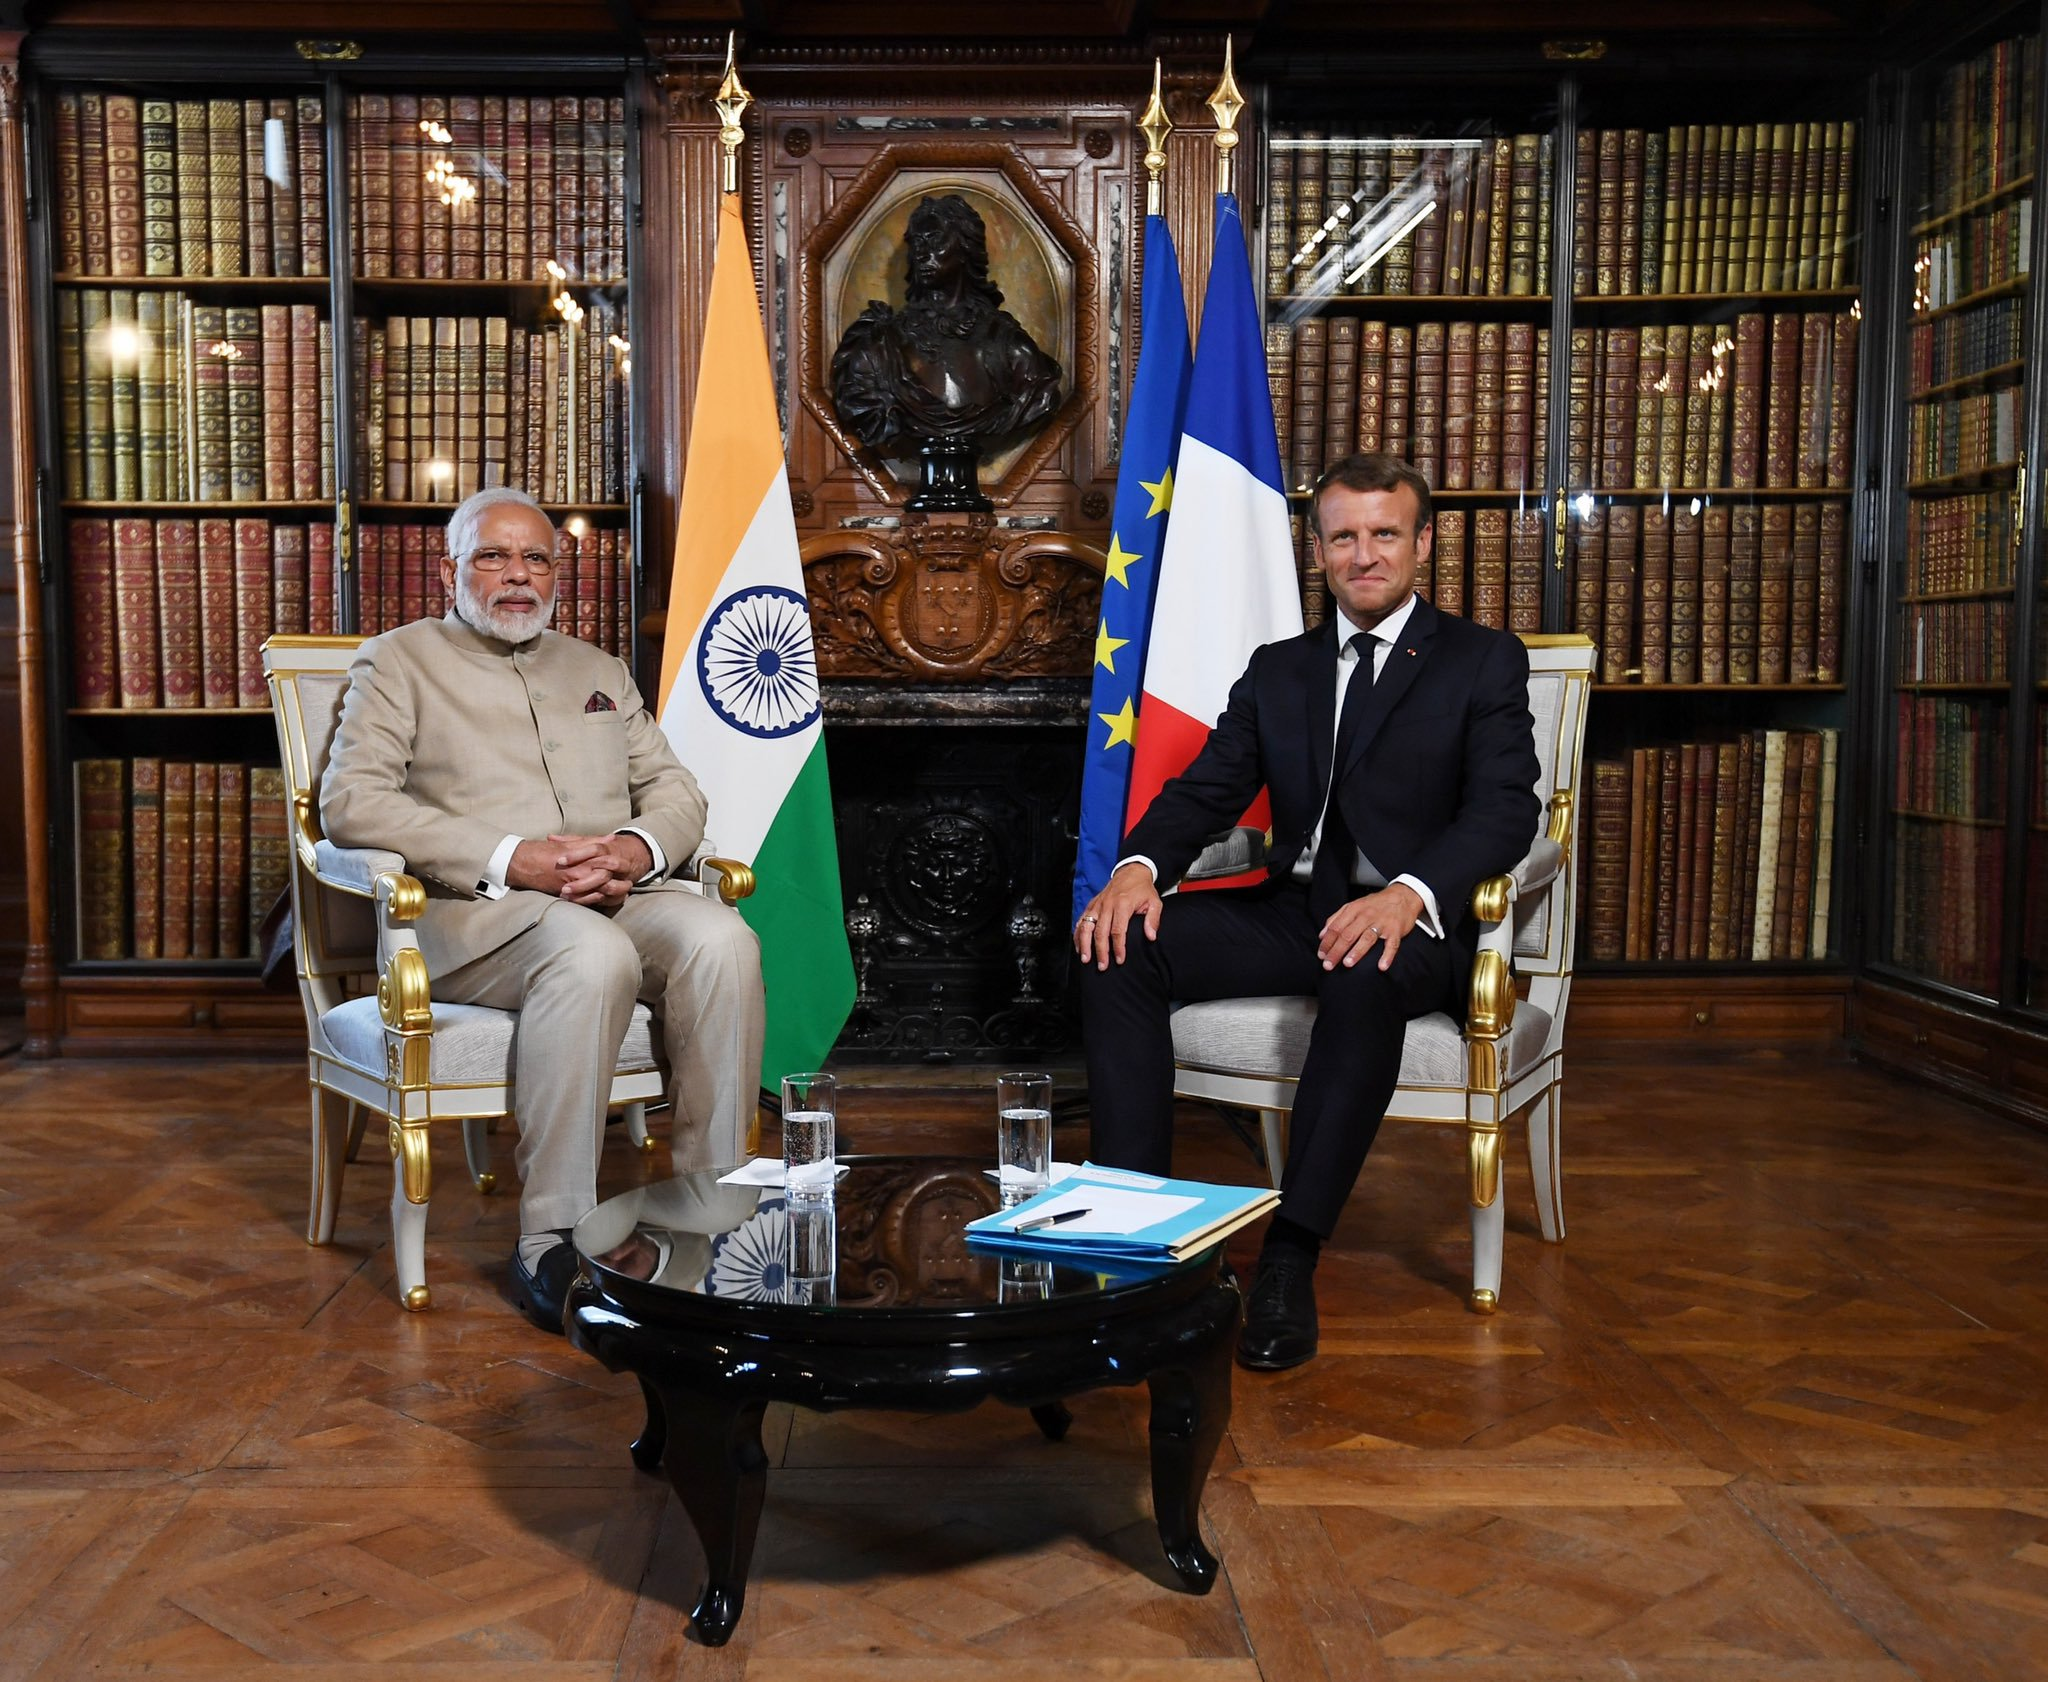 Narendra Modi had an over 90 minute meeting with French President Macron. Photo courtesy: Twitter/@narendramodi